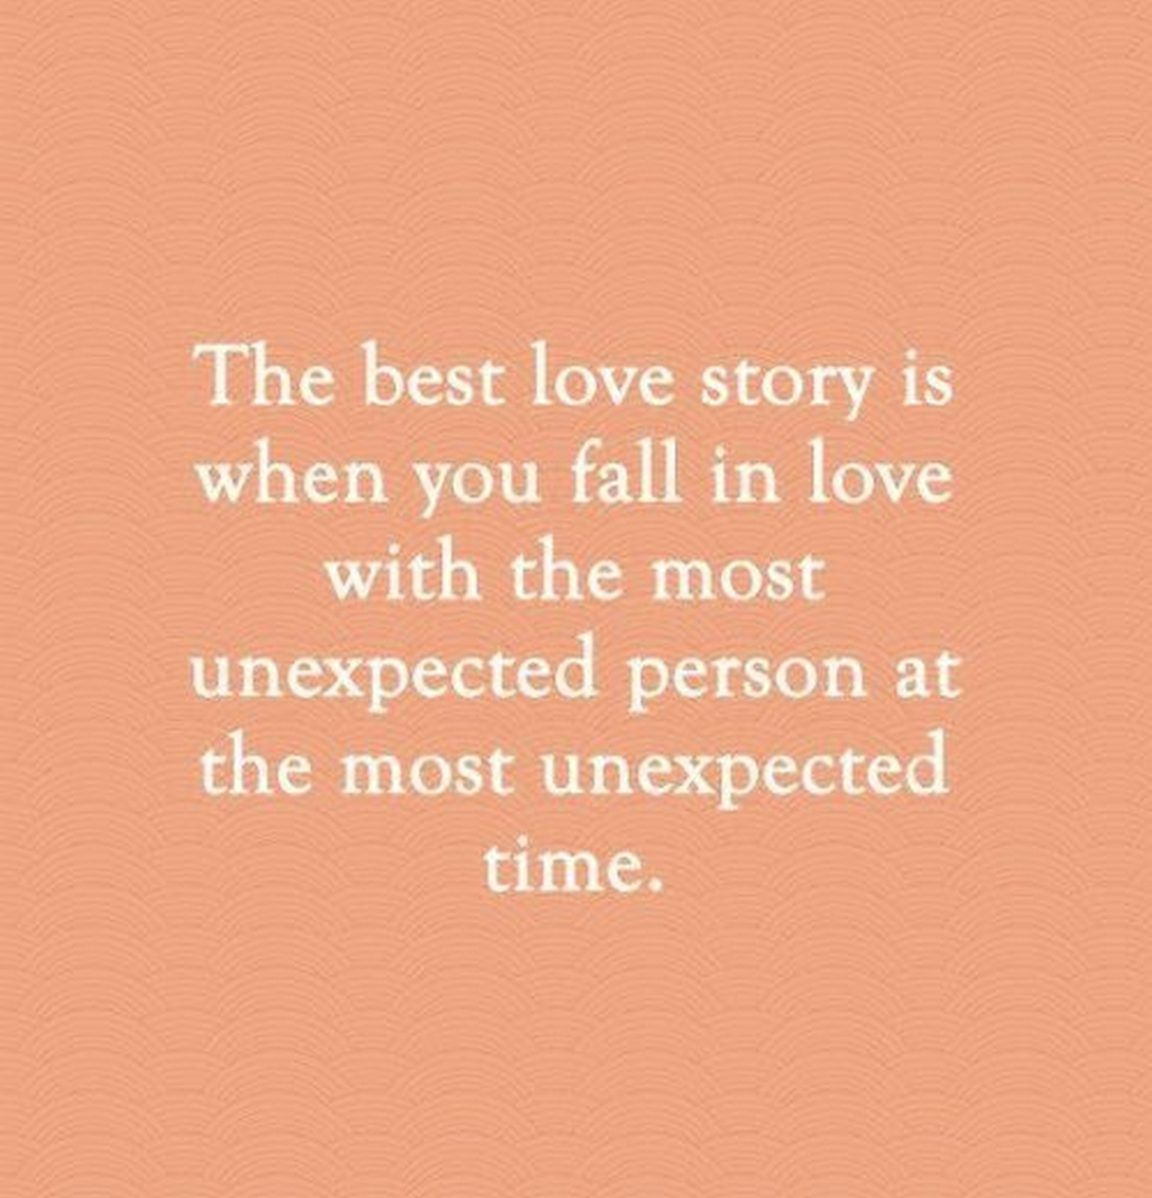 55 Romantic Quotes You'll Want to Share with the Love of Your Life